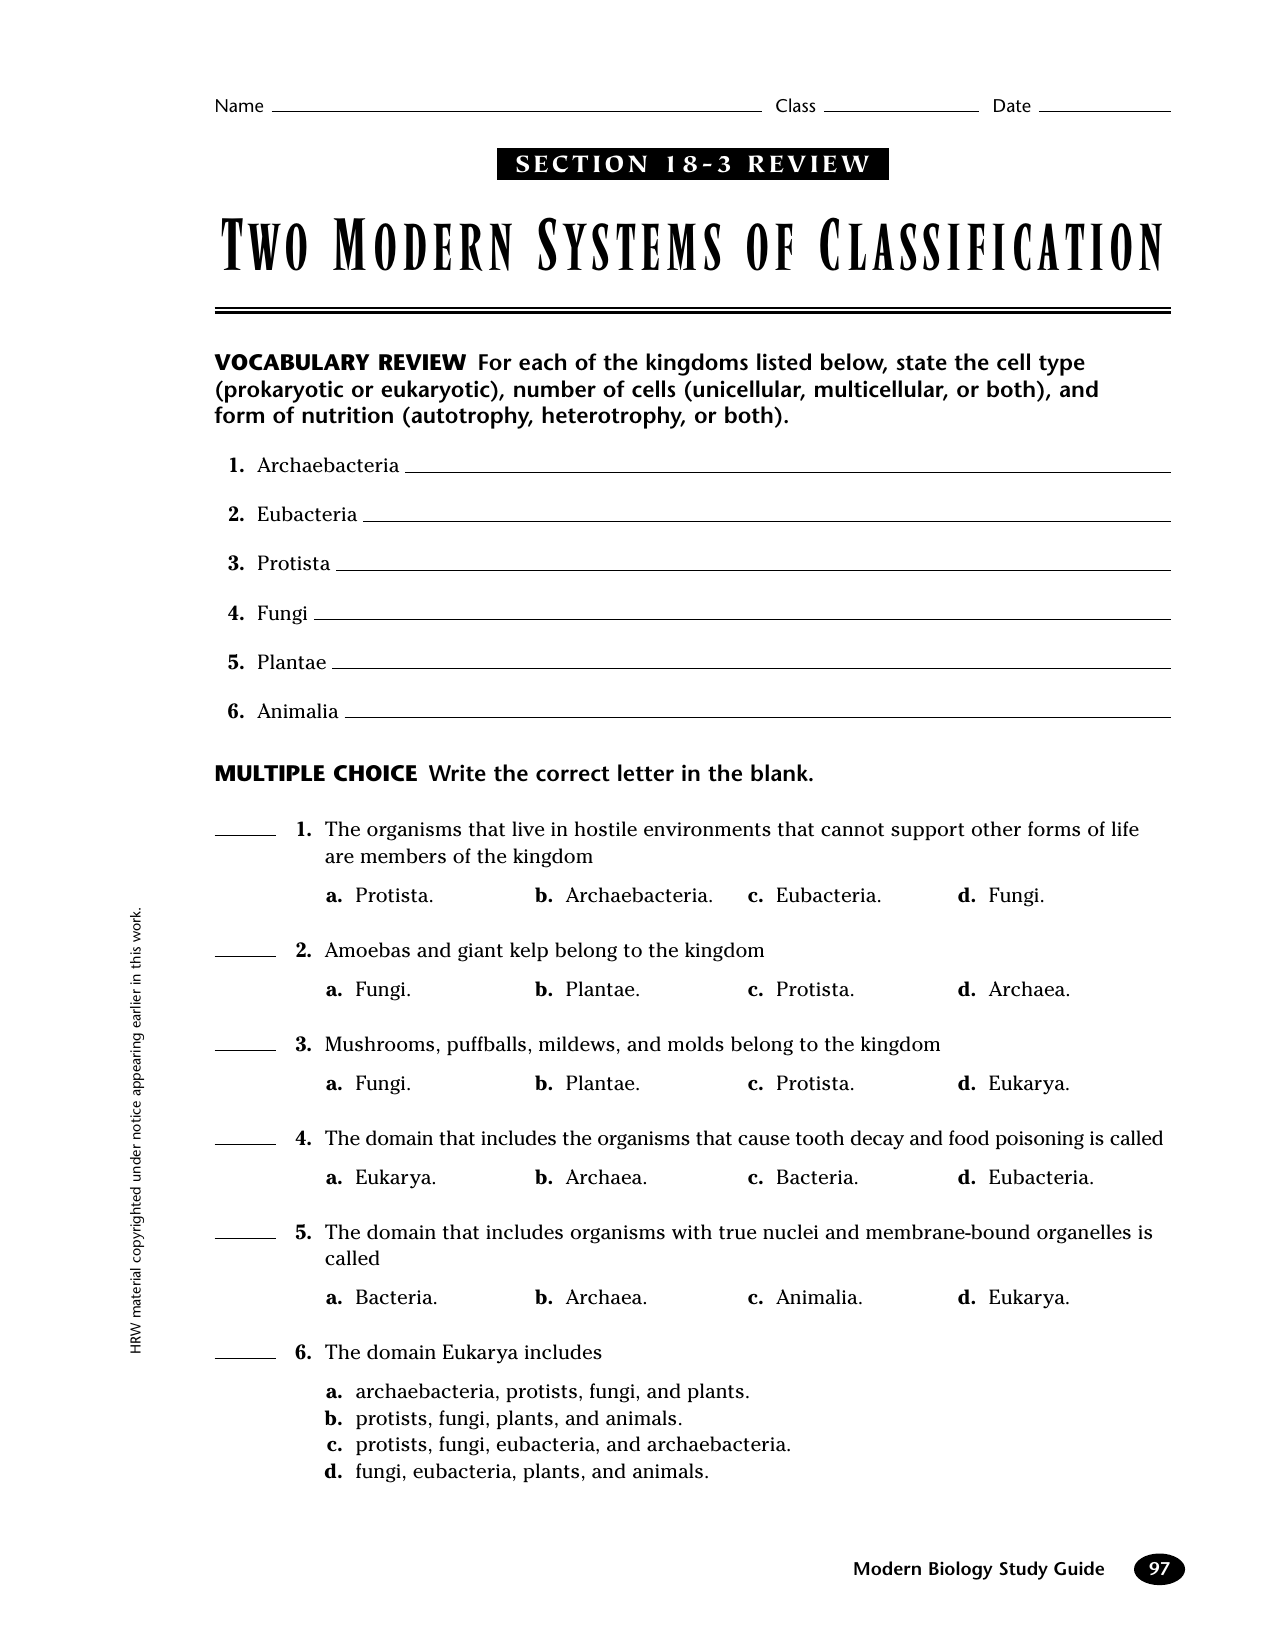 TWO MODERN SYSTEMS OF CLASSIFICATION